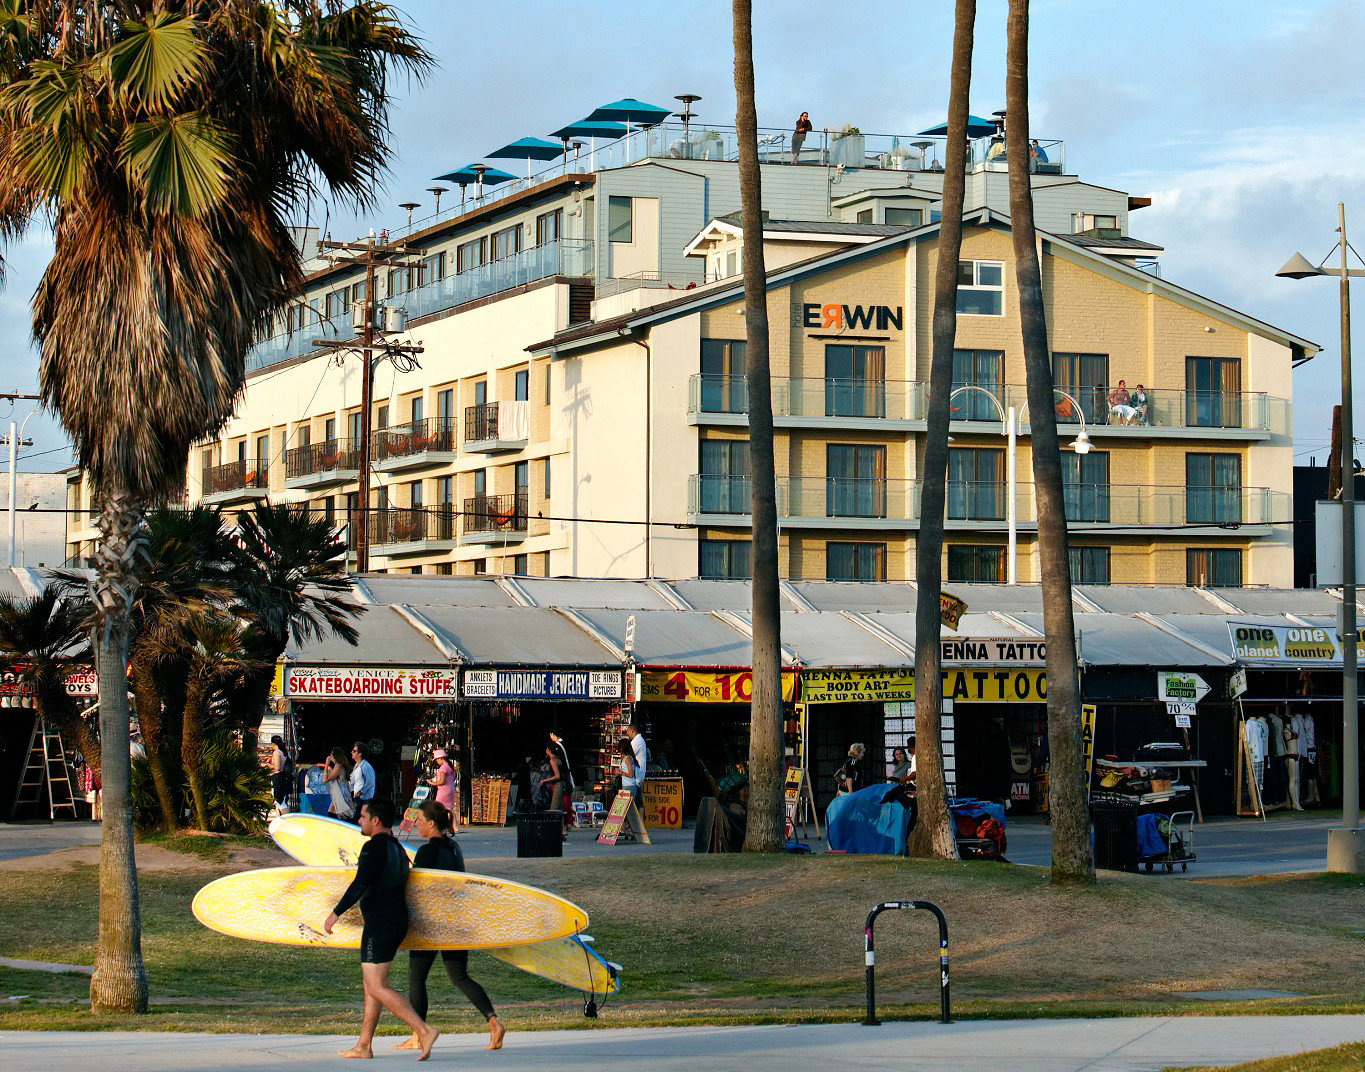 Beach Hotels Nature Outdoor Activities Outdoors Town outdoor building sky neighbourhood City road urban area plaza residential area street human settlement Downtown vacation shopping mall sport venue tourism town square infrastructure pedestrian cityscape